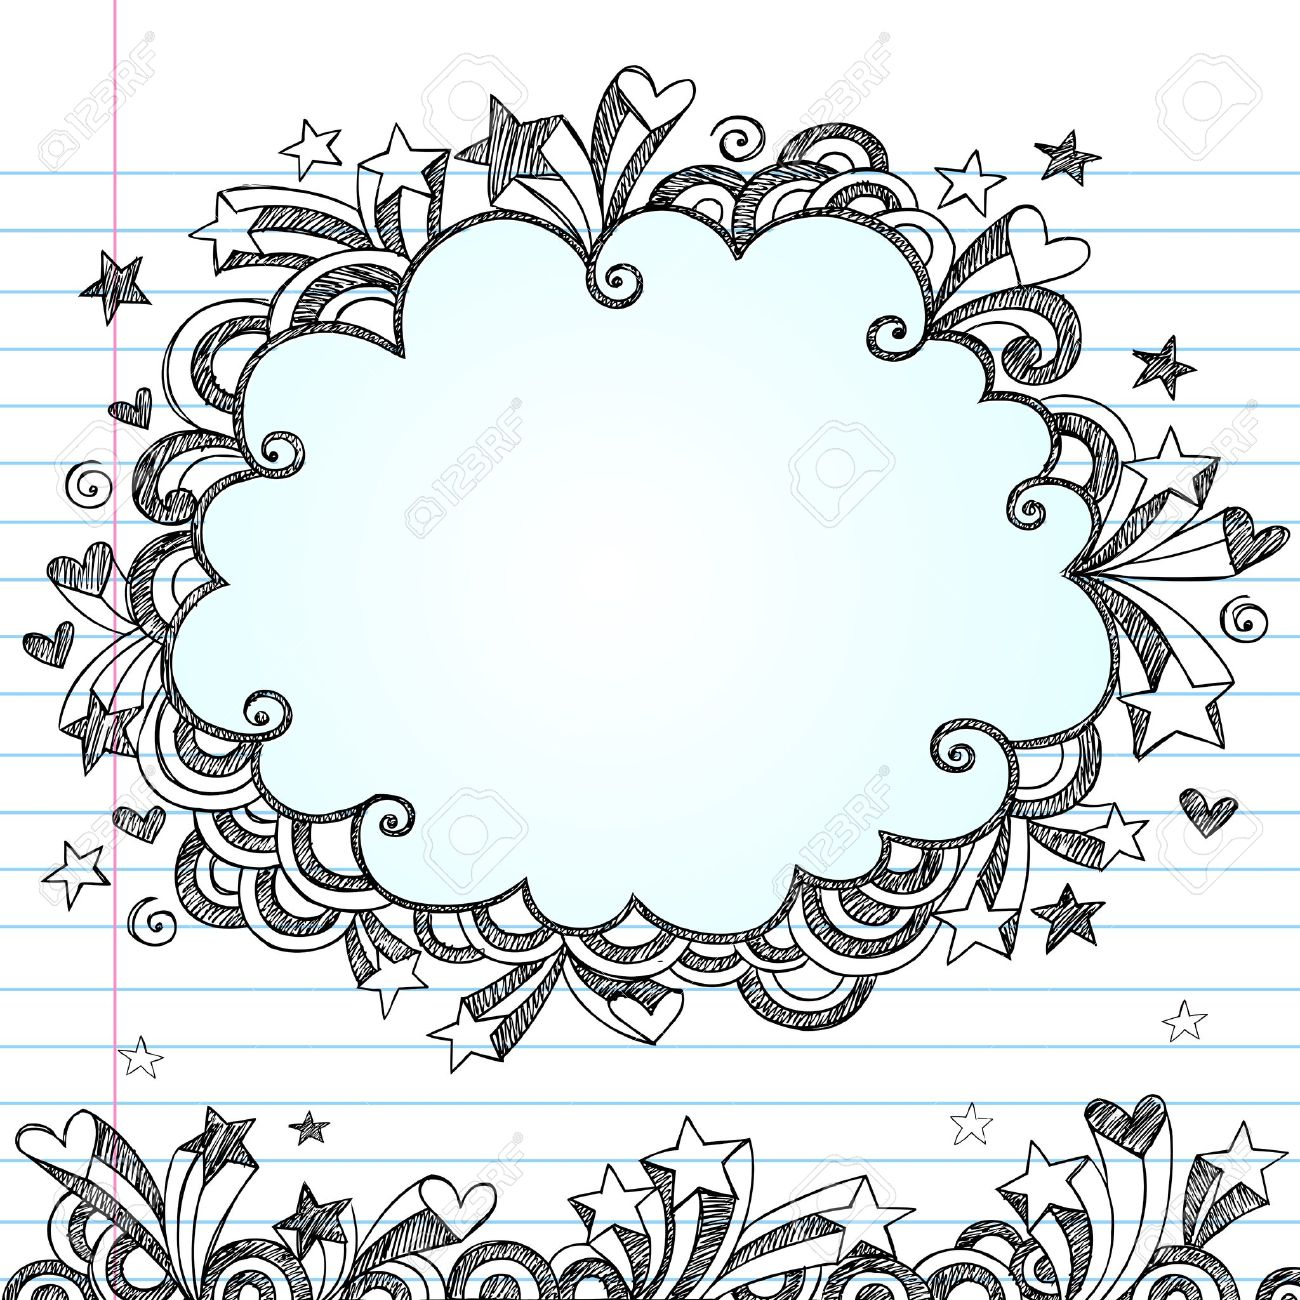 Drawn paper doodle Background Search Google Pinterest